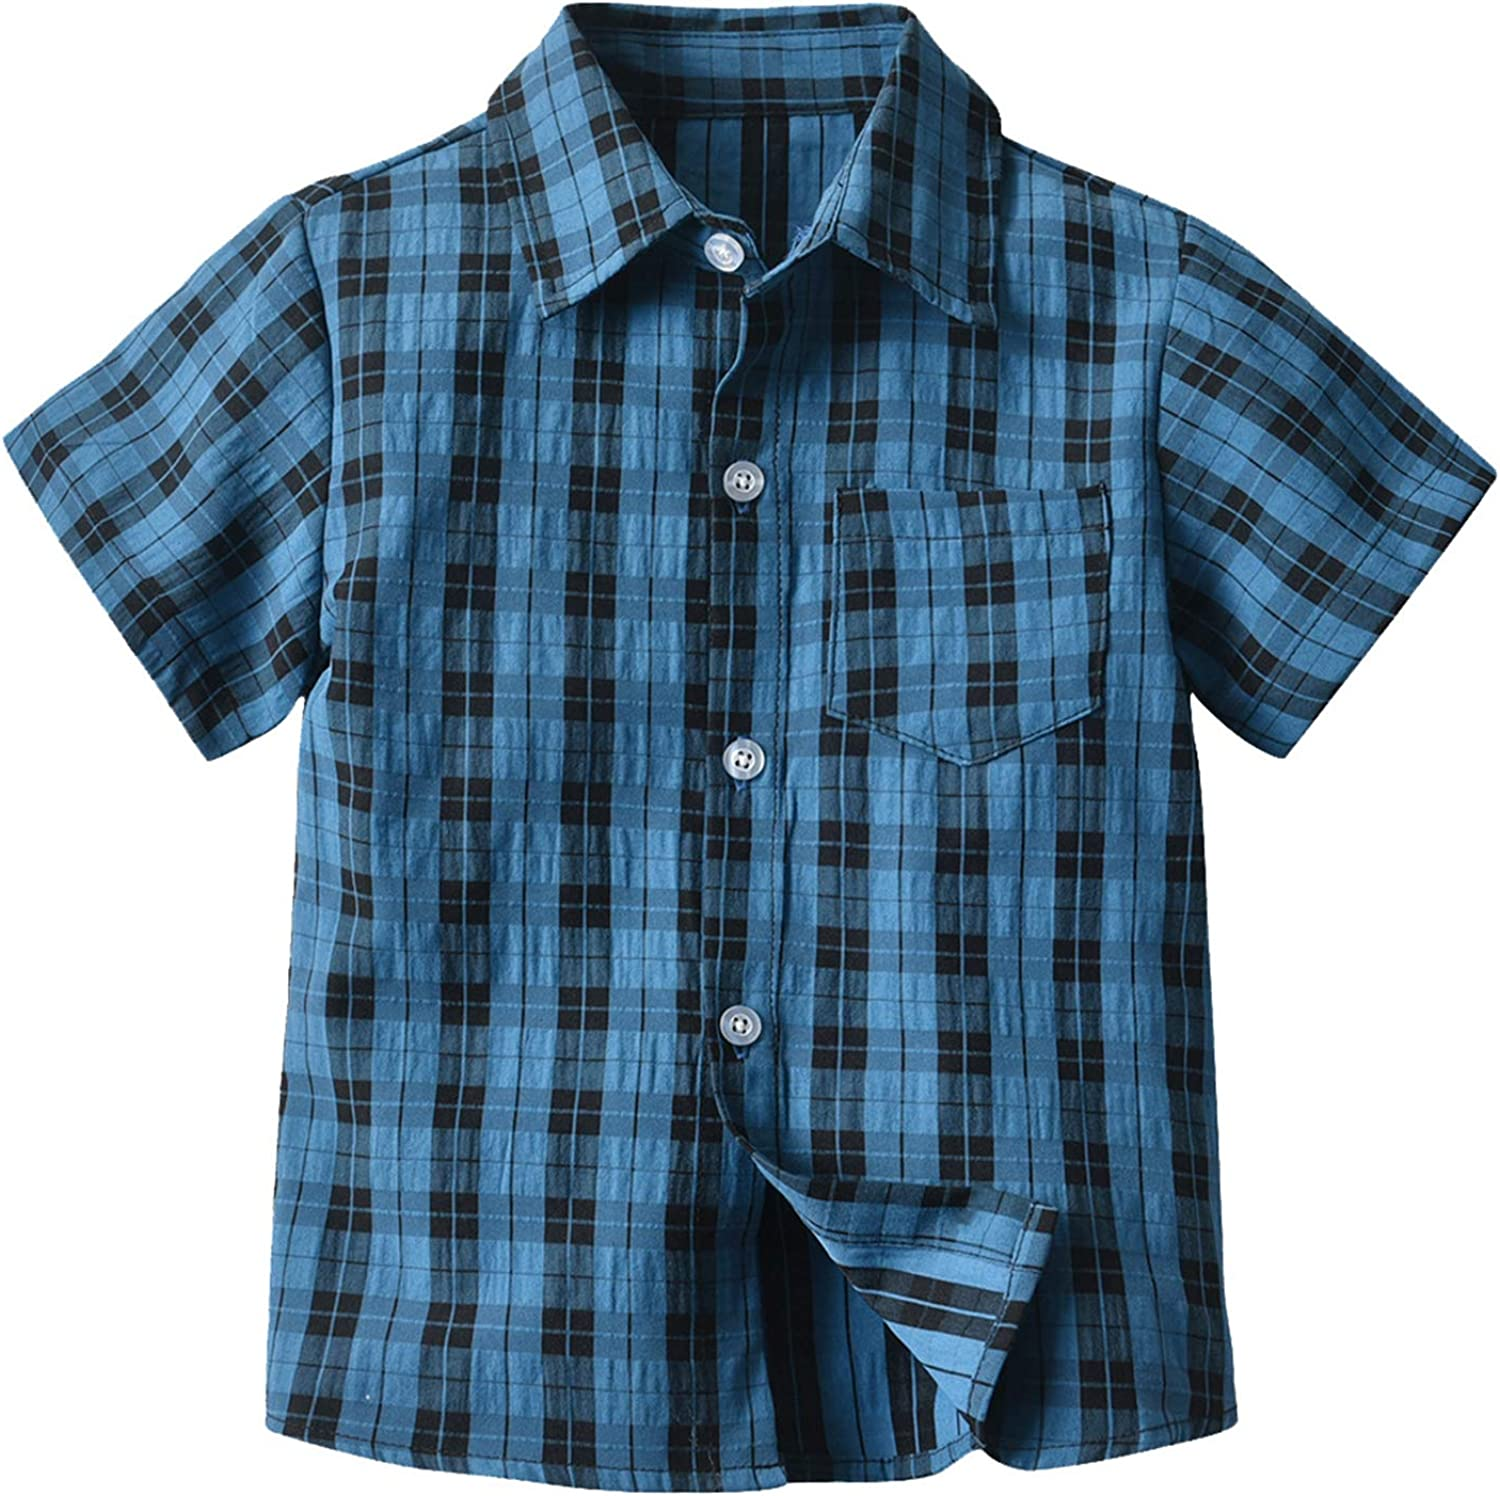 Toddler Baby Boy's Button Down Plaid Shirts Short Excellent Sleeve NEW before selling Striped